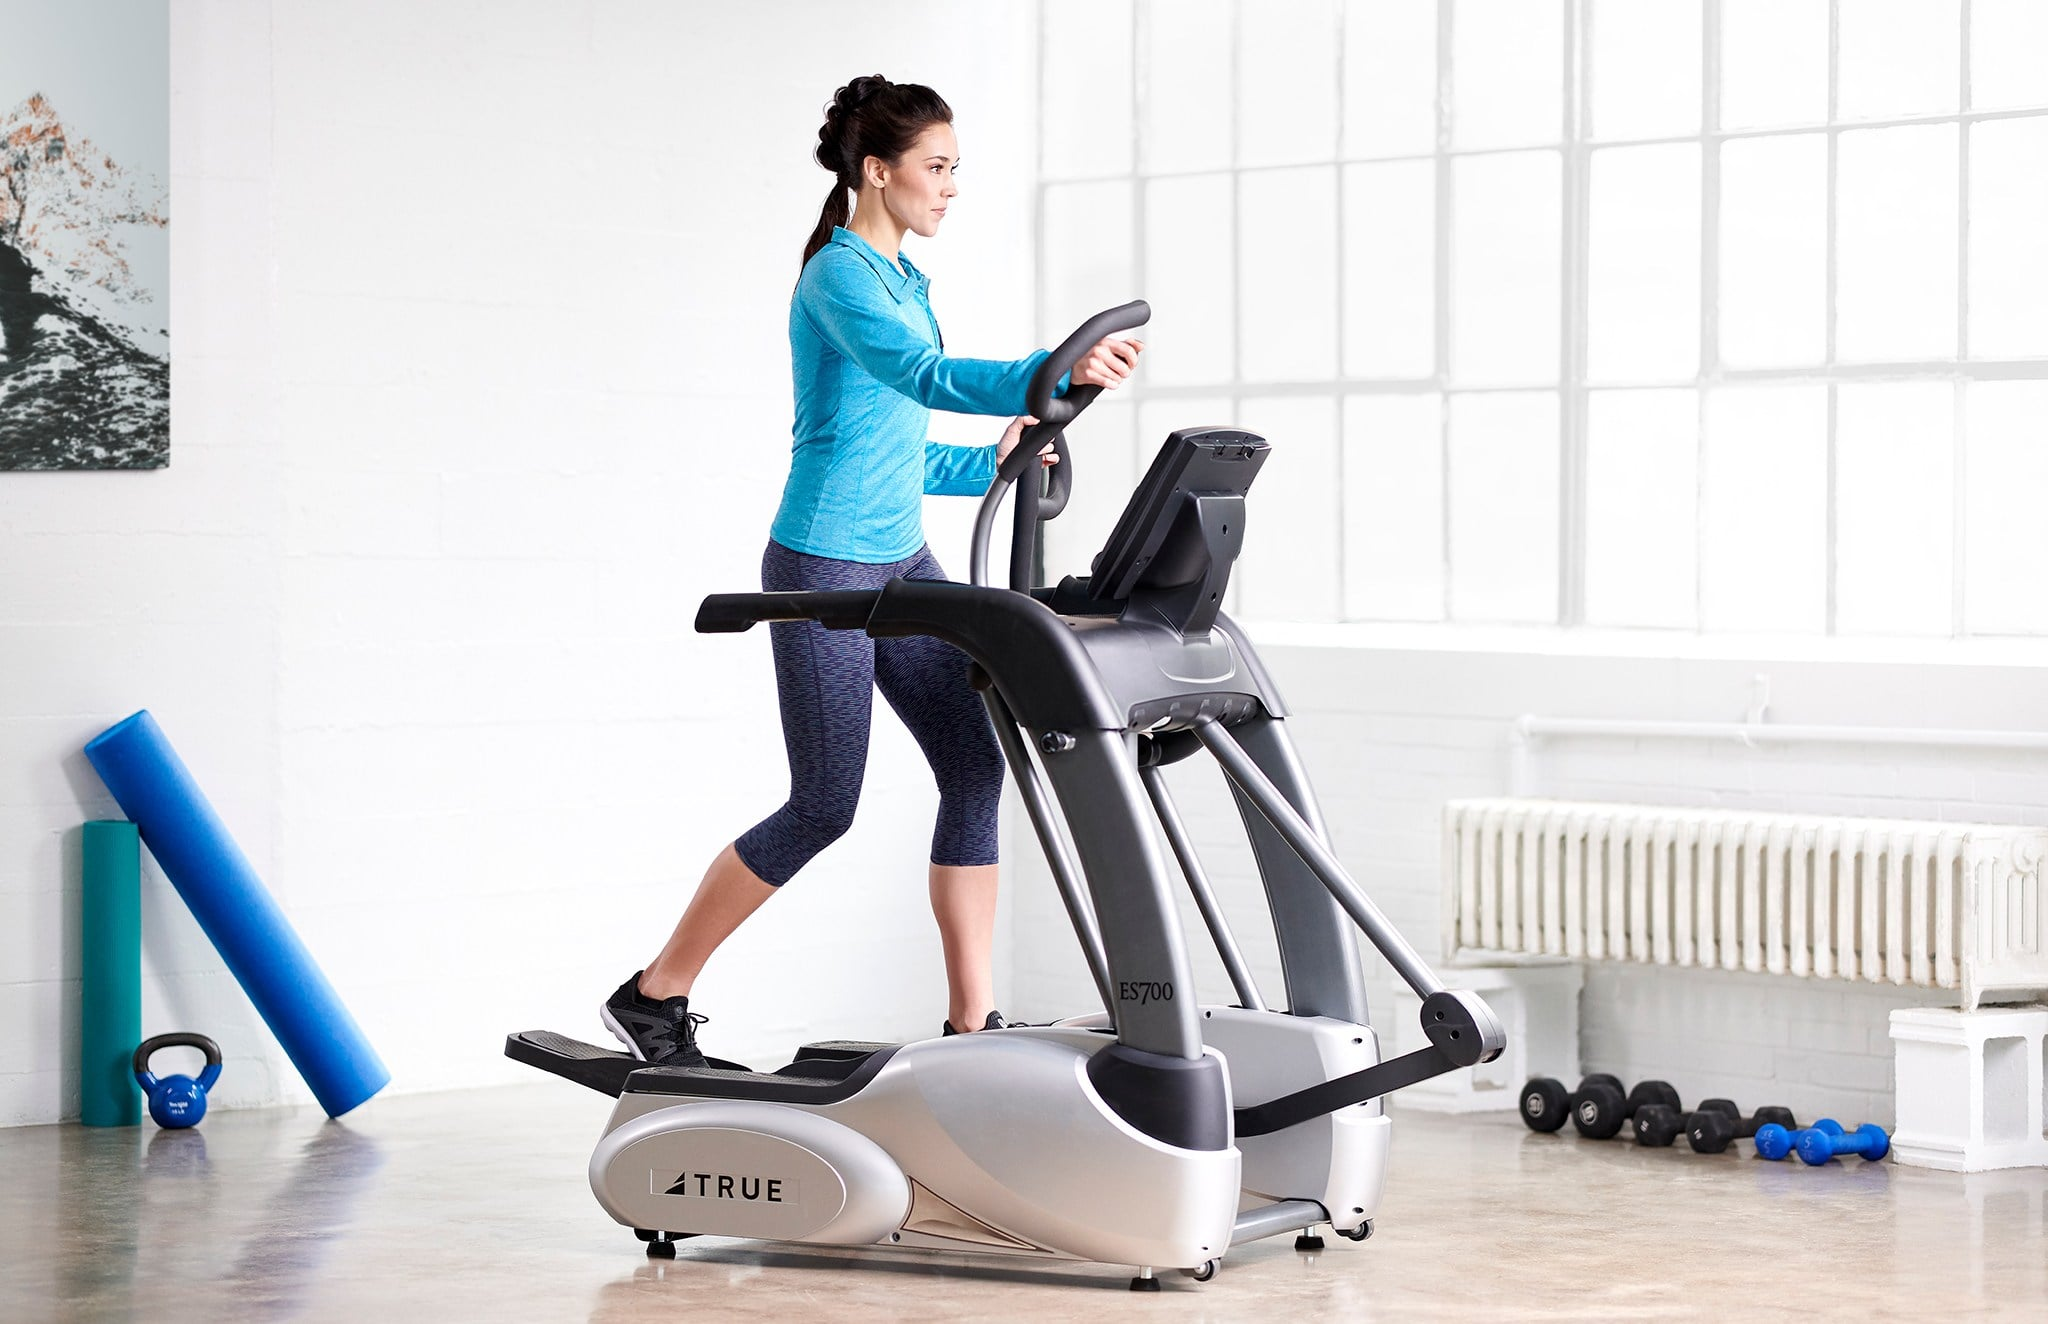 TRUE Fitness Home Elliptical Trainer - Shop Fitness Gallery